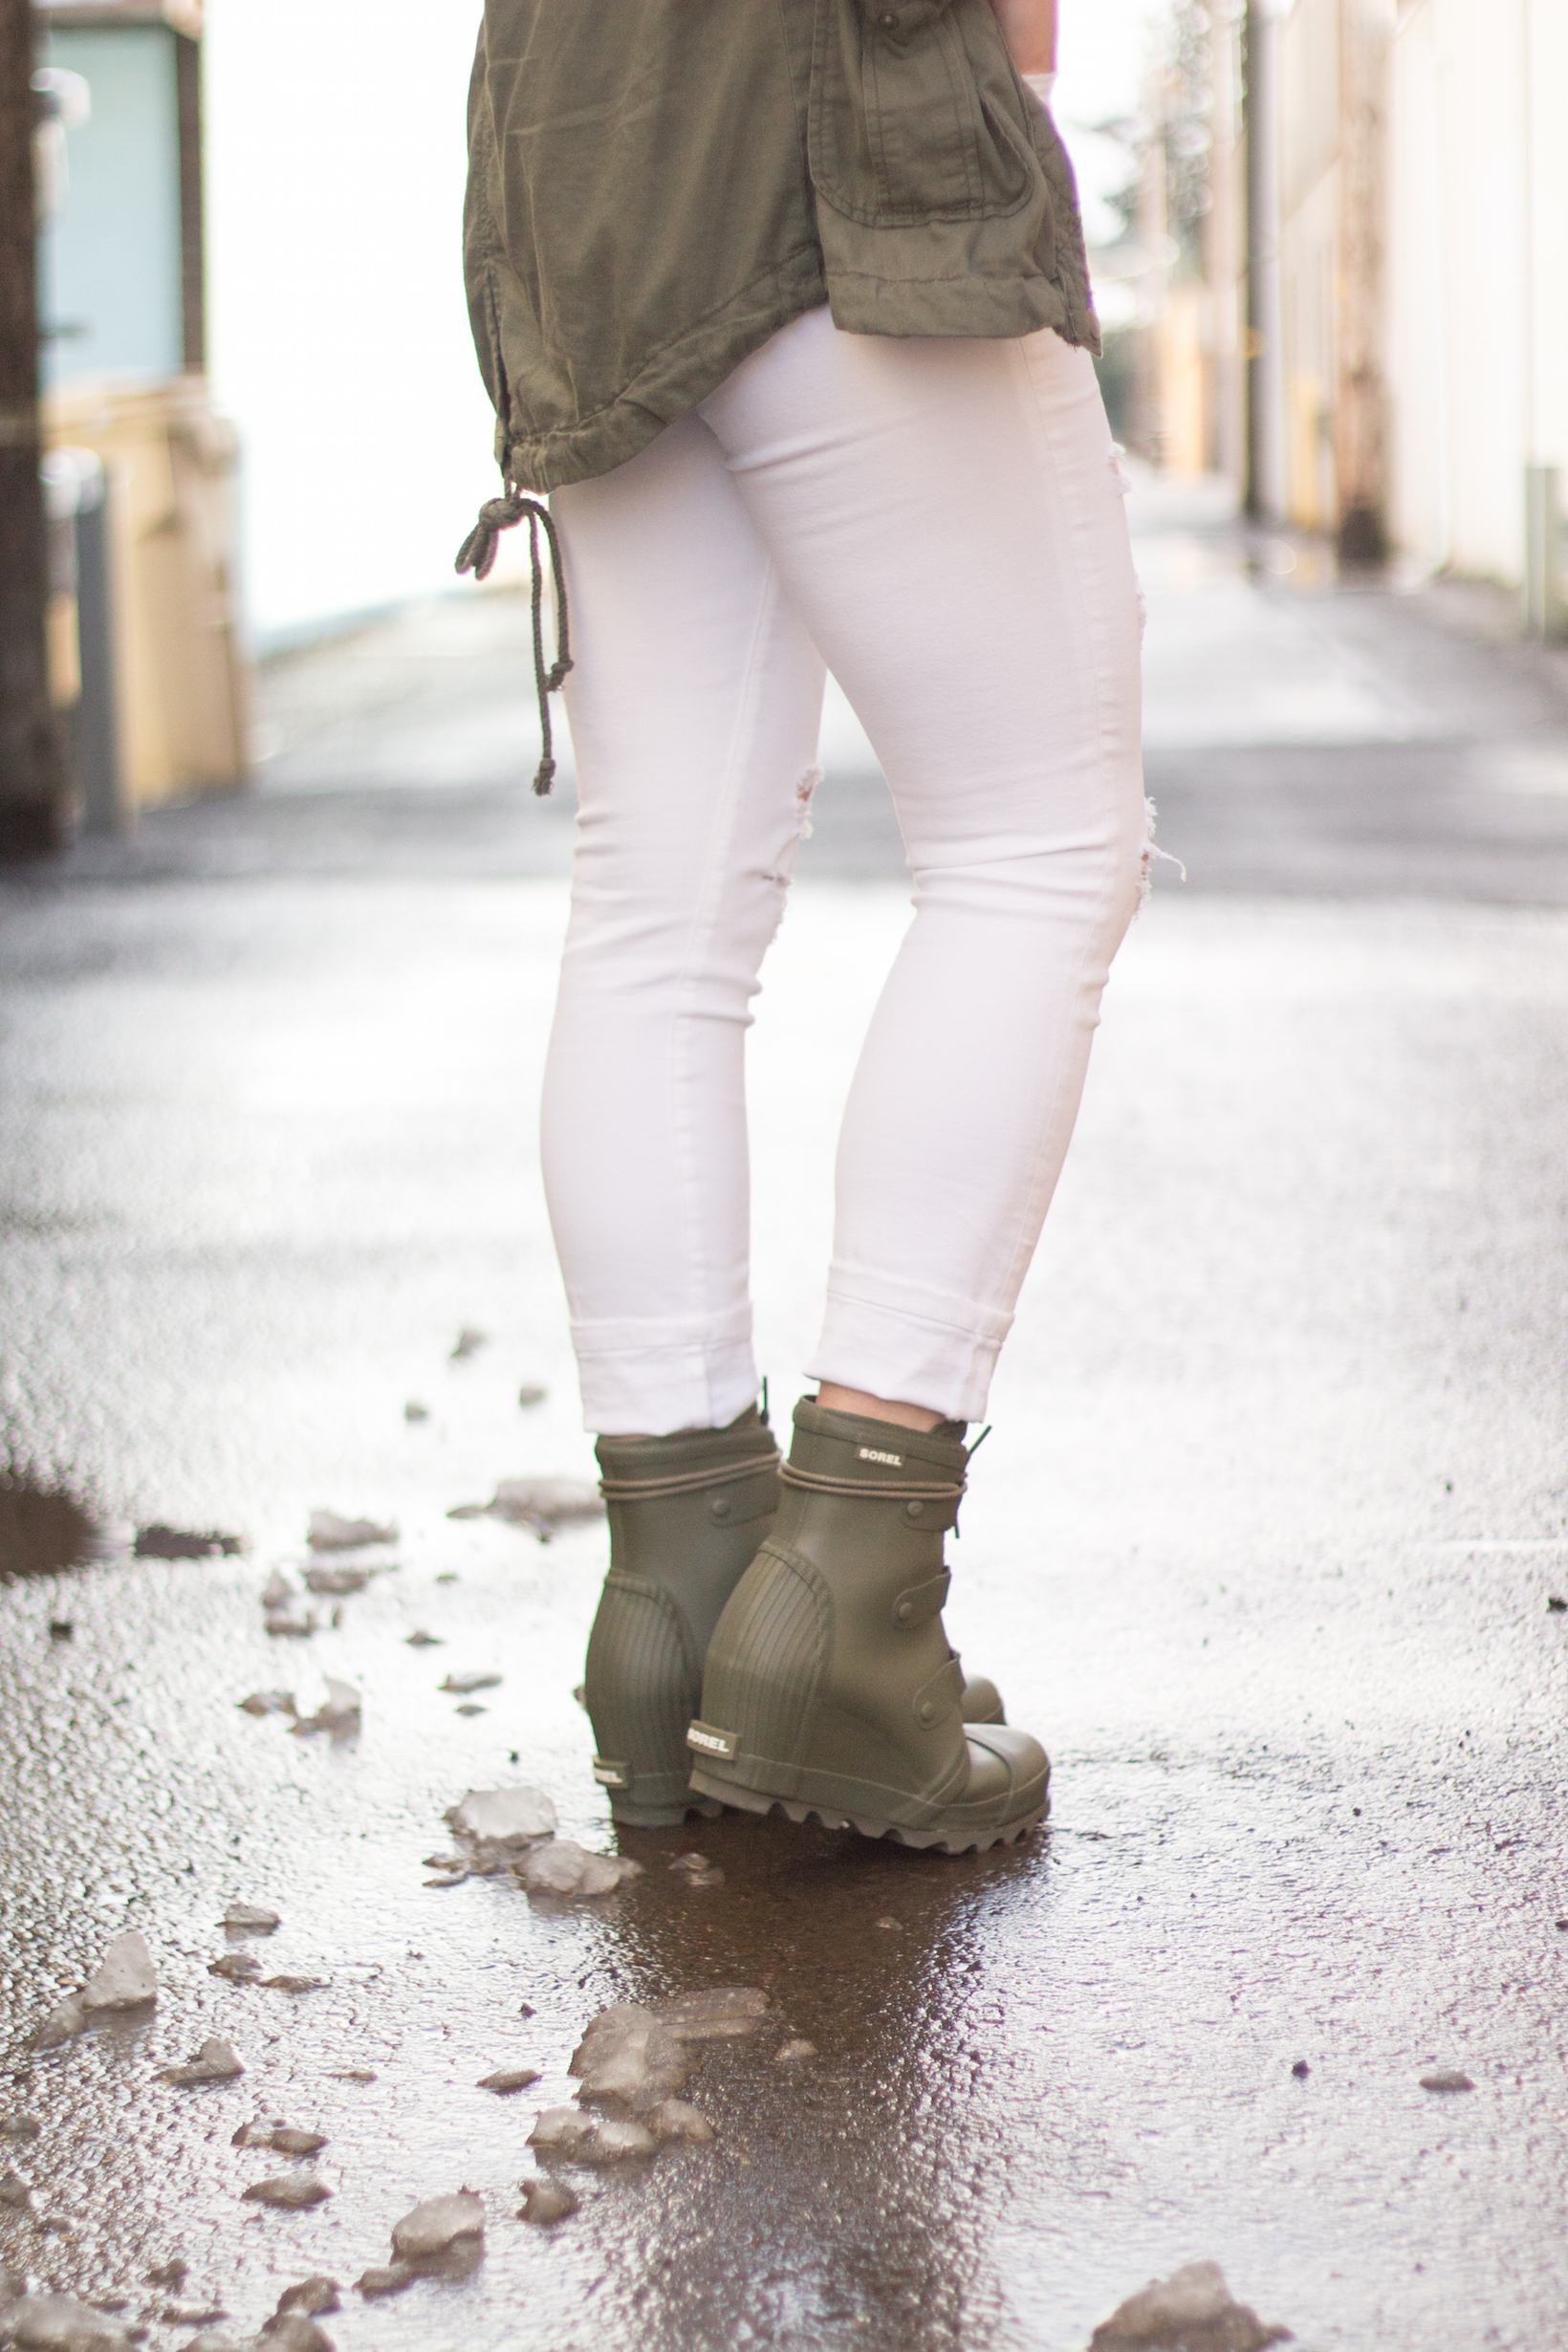 ee89a379875 Green sorel boots styled popular portland fashion blogger topknots and  pearls jpg 1640x2460 Sorel spring